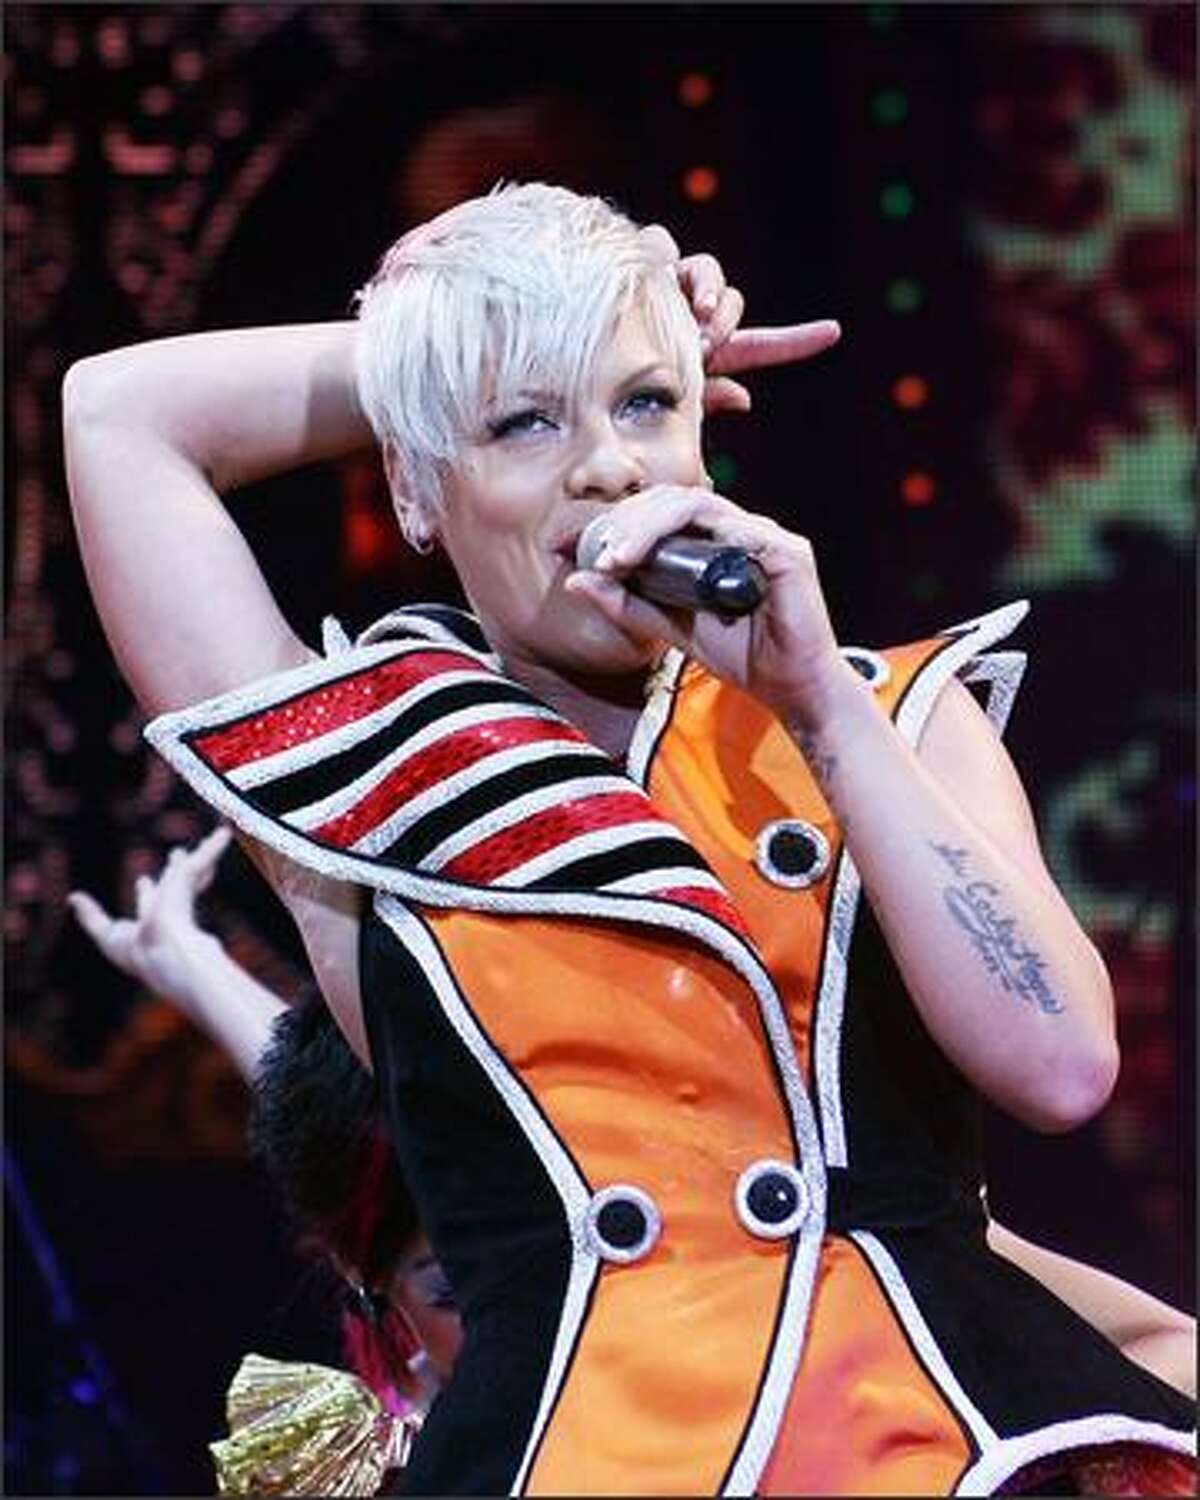 Singer Pink performs on stage at the Burswood Dome in Perth, Australia.